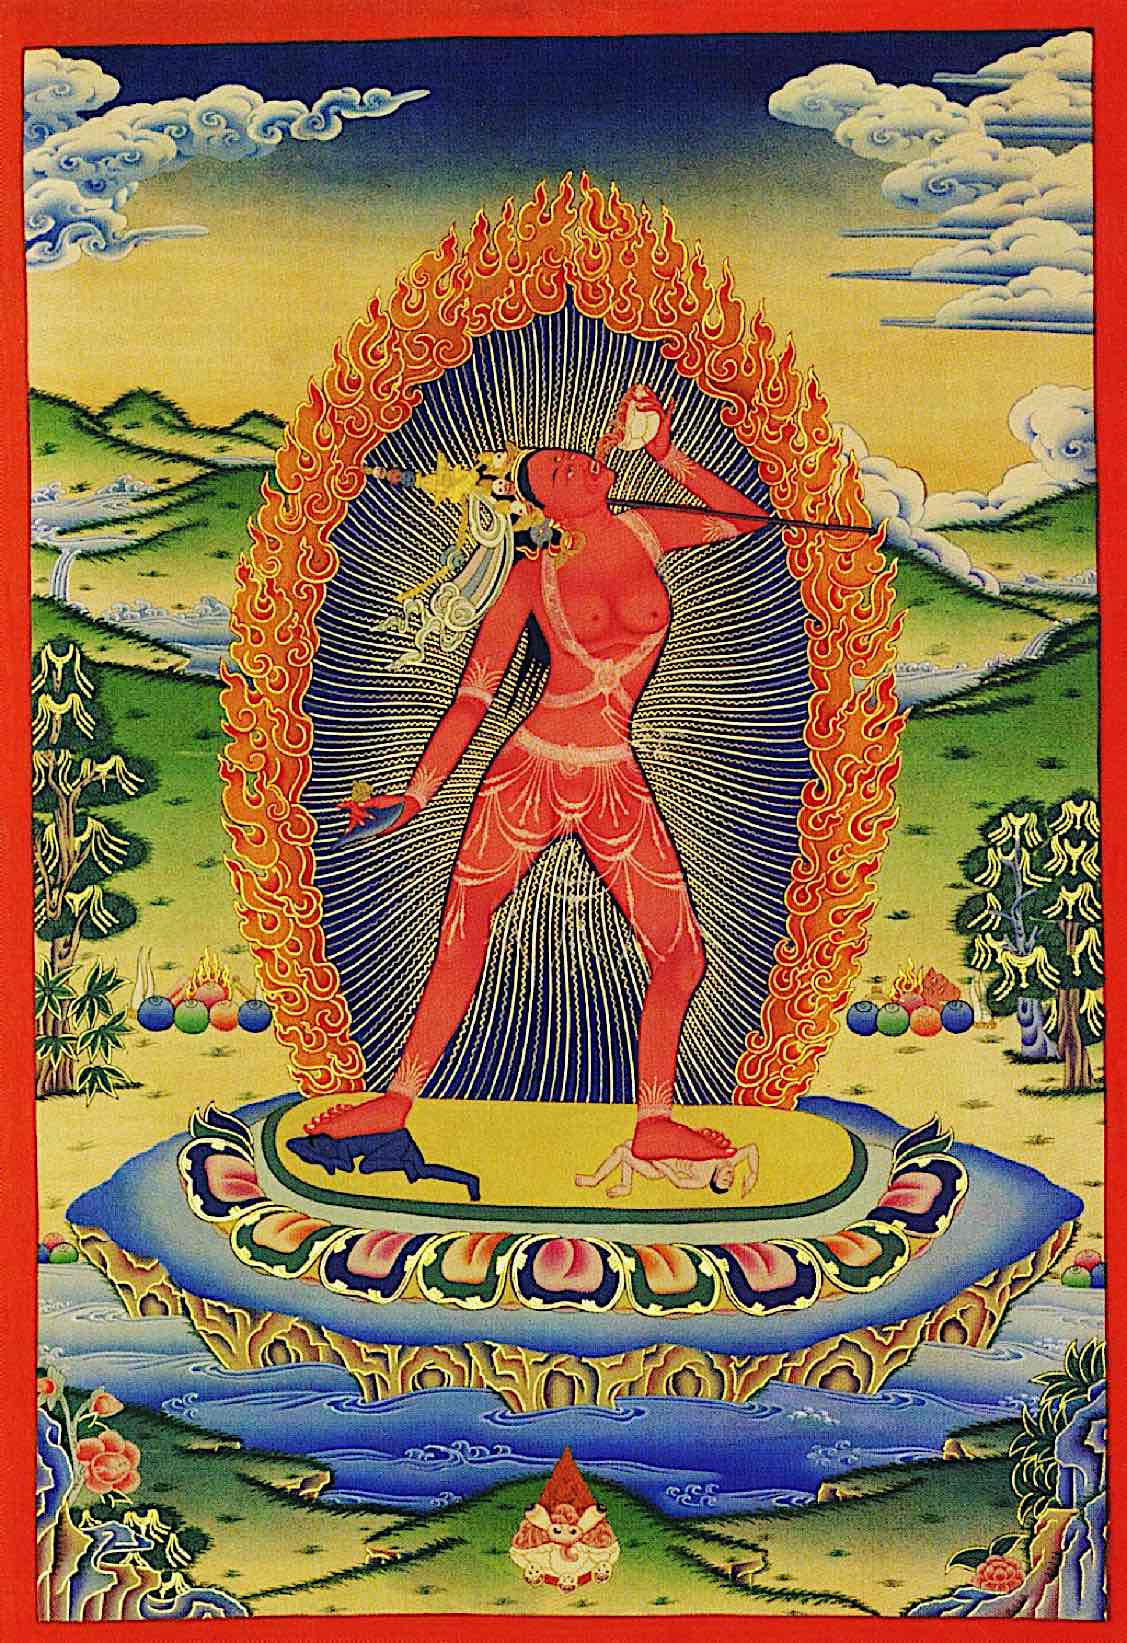 Naked wisdom for degenerate times: Vajrayogini, enlightened